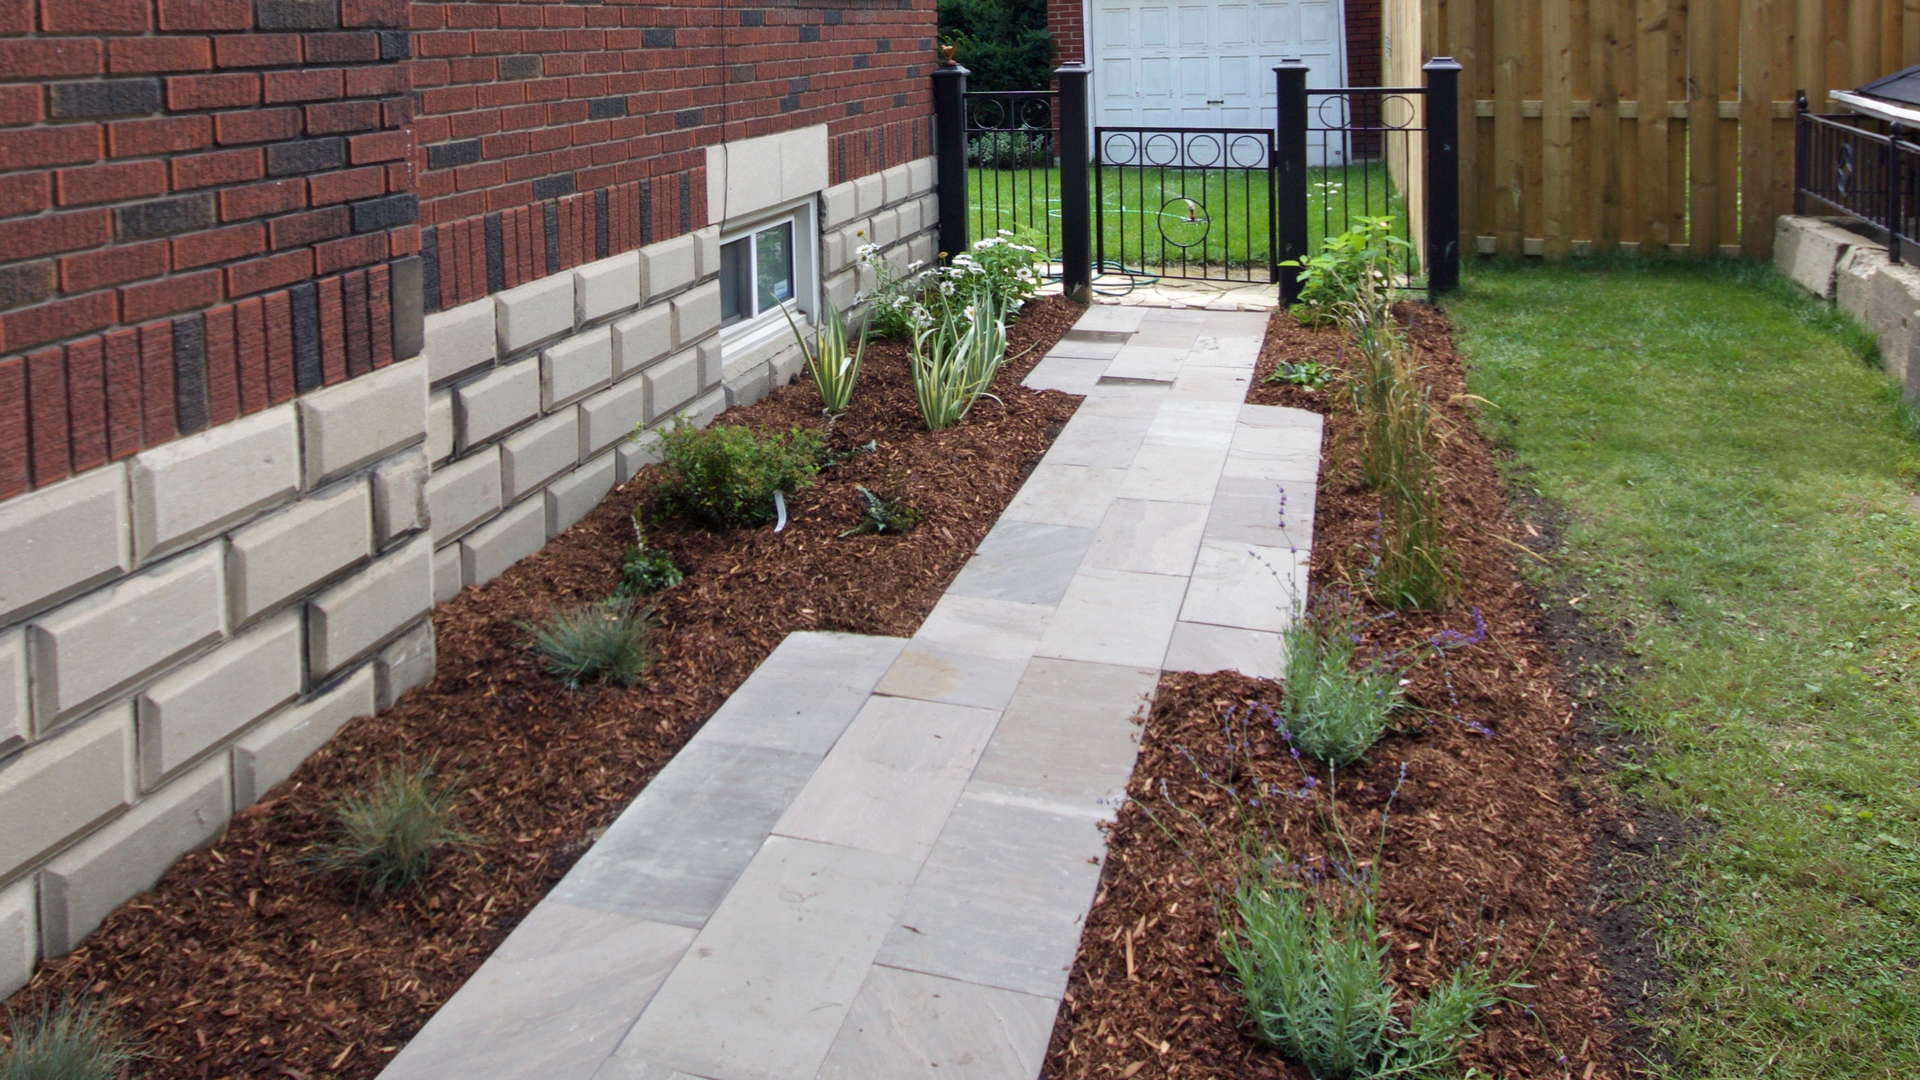 Stone steps and landscaping. Modern landscaping / hardscaping project in London Ontario.